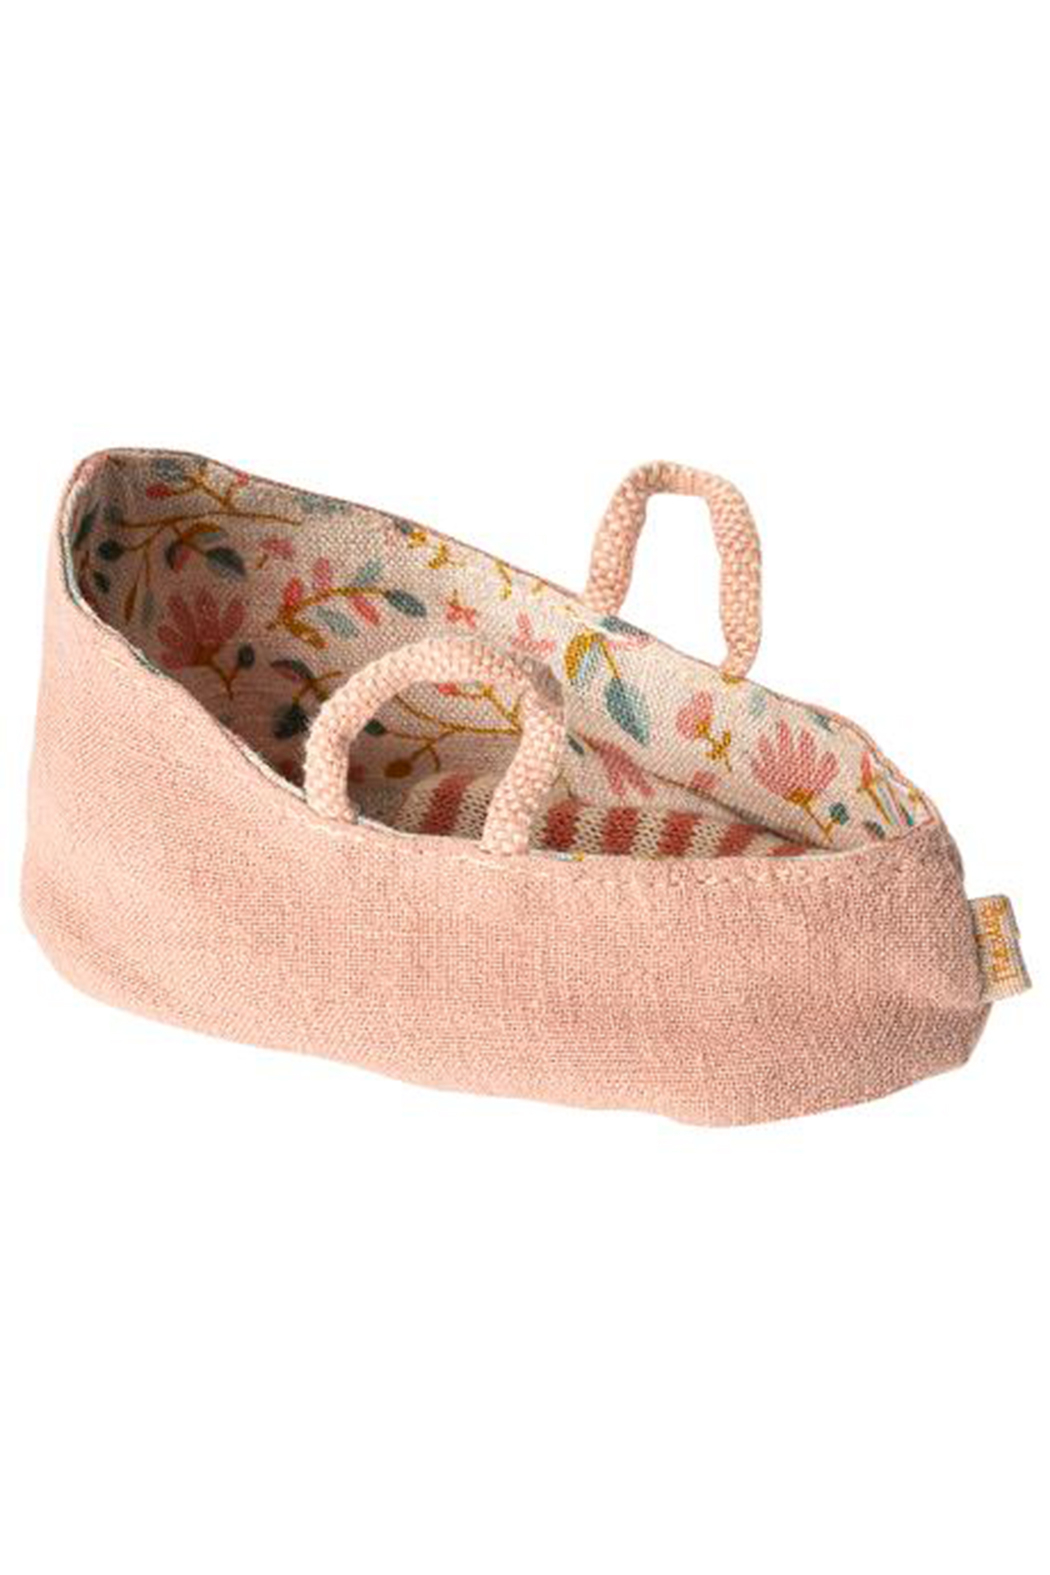 Maileg Carry Cot, MY - Main Image